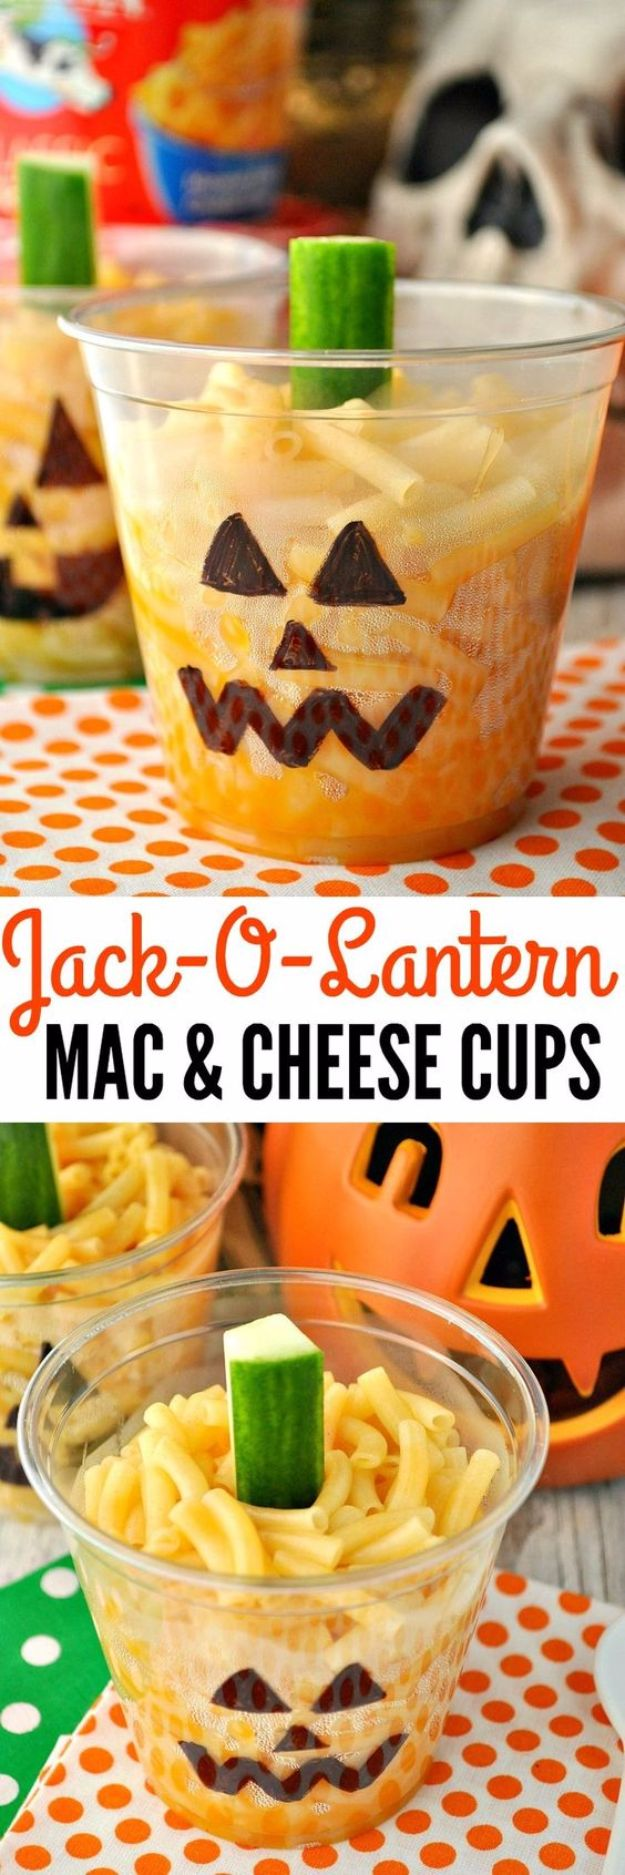 Cute Halloween Party Snacks - Jack-O-Lantern Mac and Cheese Cups - Healthy Ideas for Kids for School, Teens and Adults - Easy and Quick Recipes and Idea for Dips, Chips, Spooky Cookies and Treats - Appetizers and Finger Foods Made With Vegetables, No Candy, Cheap Food, Scary DIY Party Foods With Step by Step Tutorials #halloween #halloweenrecipes #halloweenparty